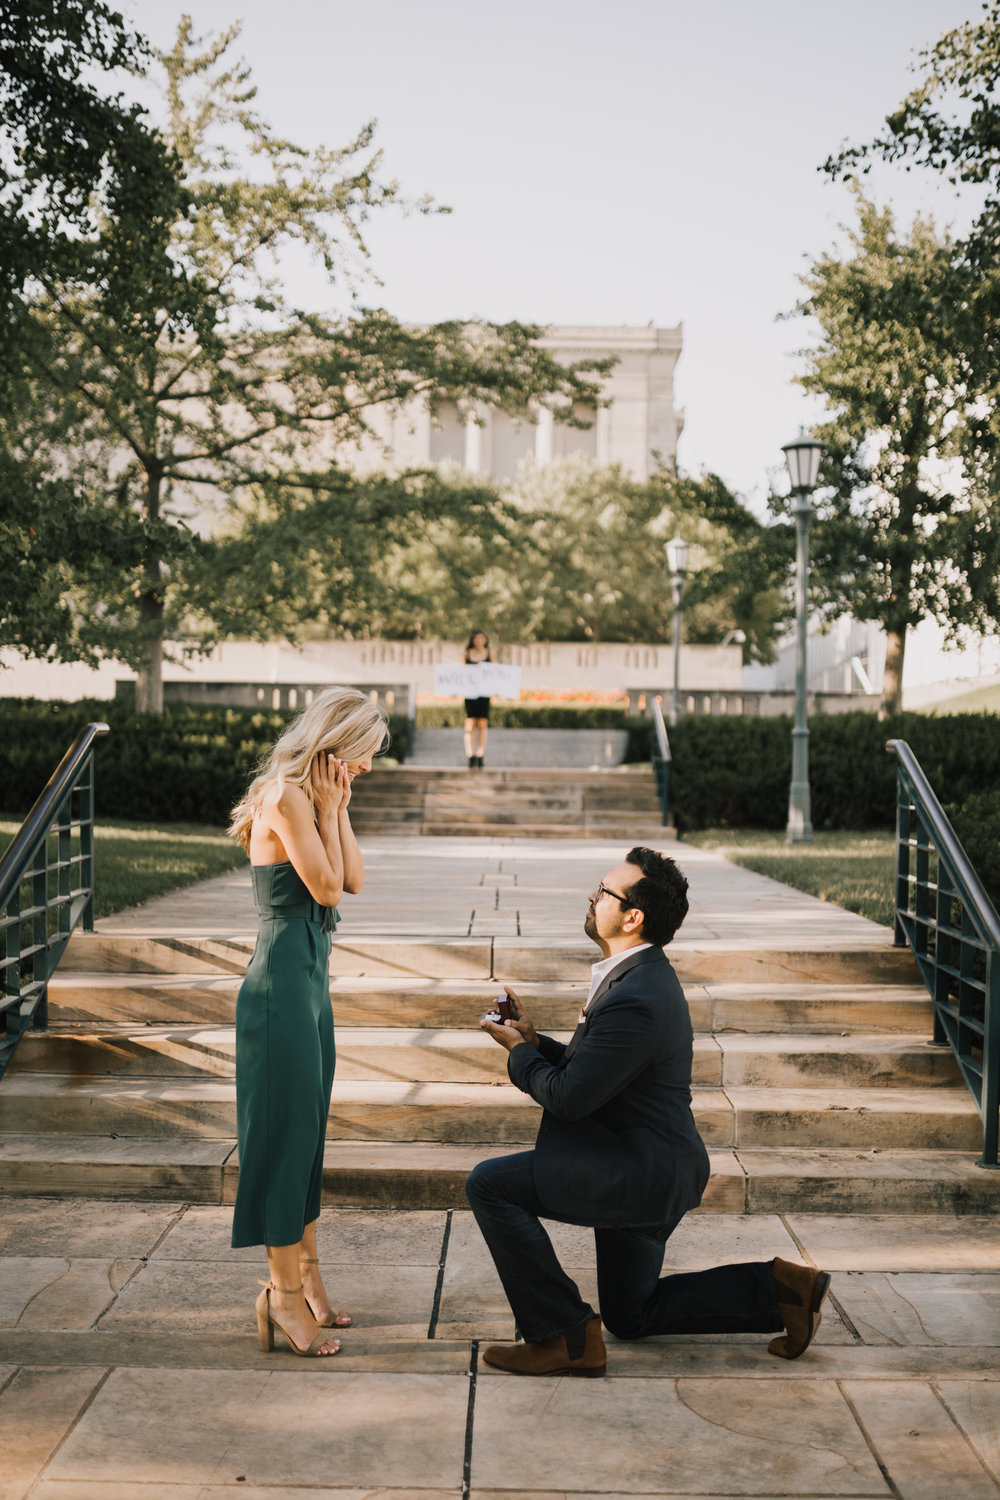 alyssa barletter photography how he asked proposal nelson atkins museum kansas city missouri she said yes-3.jpg